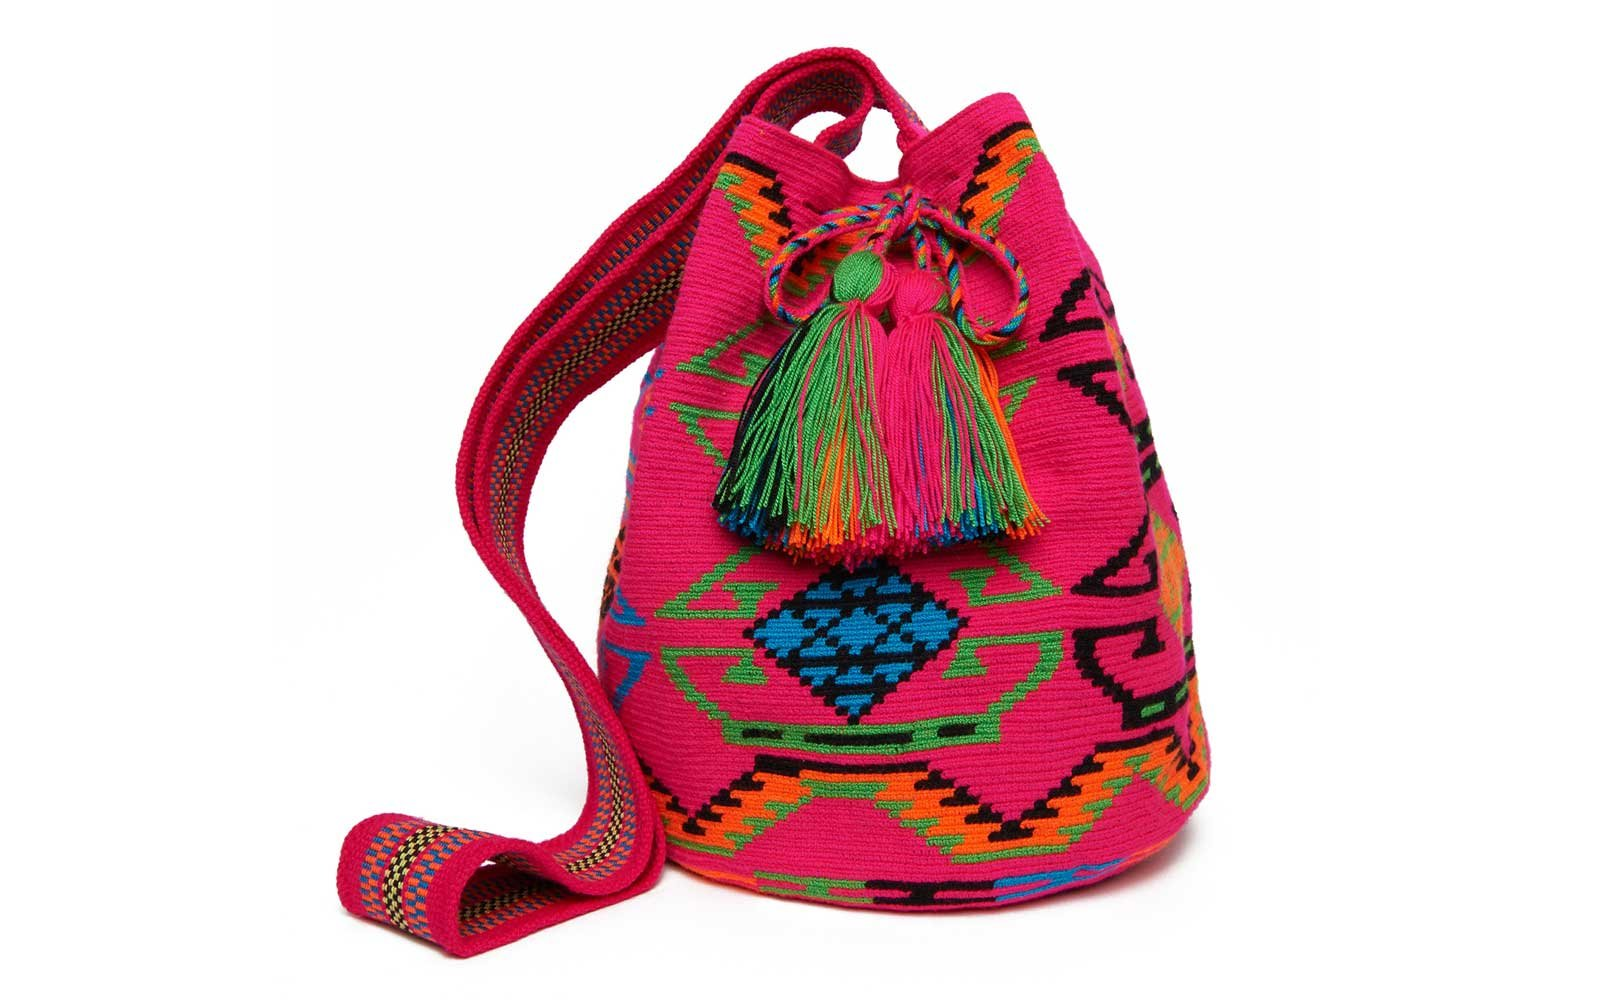 Colorful Bags for Summer